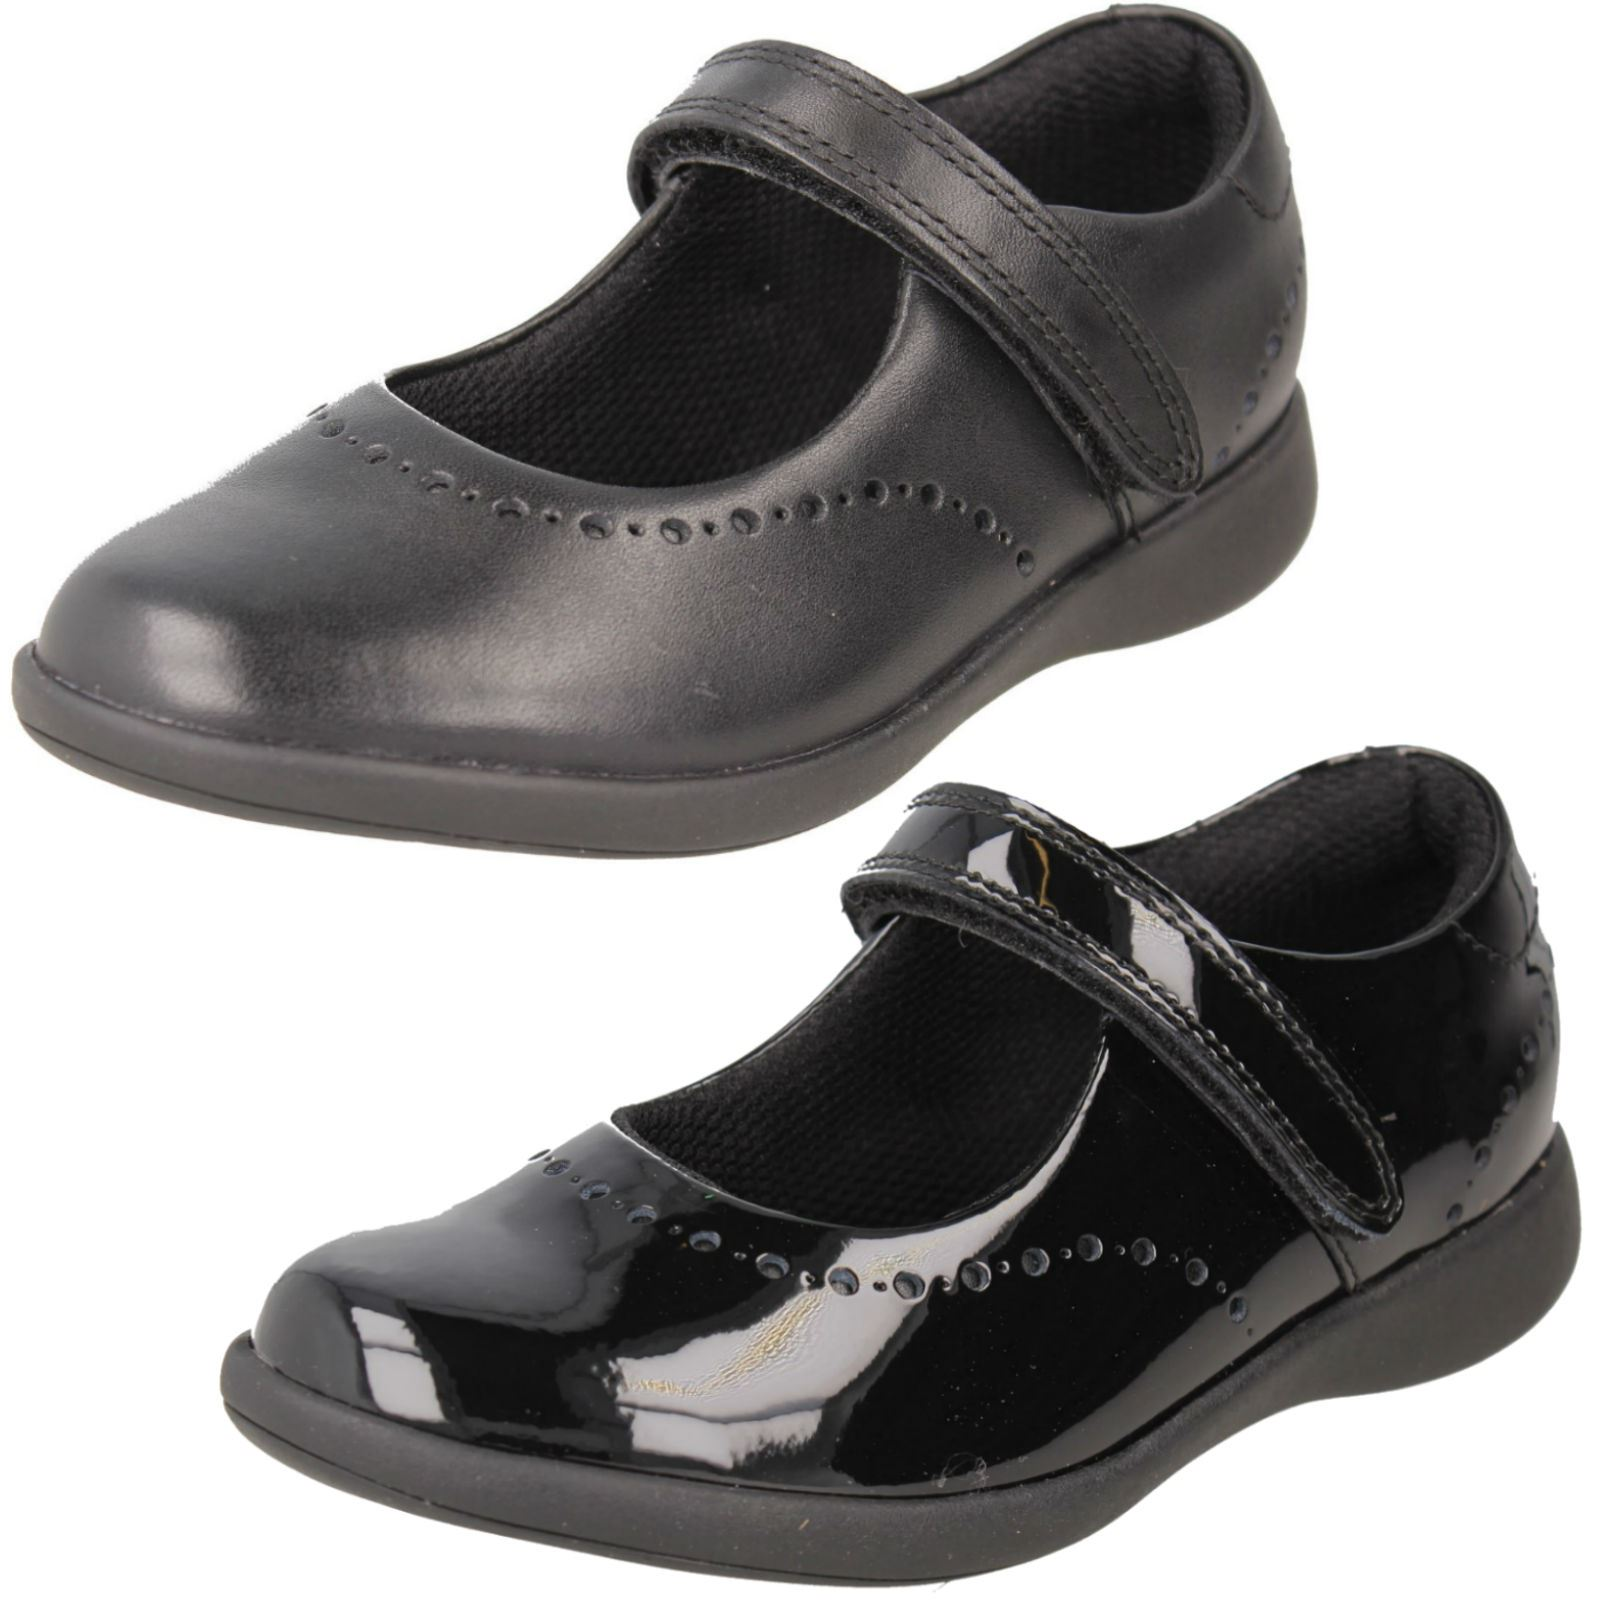 Clarks Girls Dolly Shy Black Leather School Shoes SIZE 12.5G